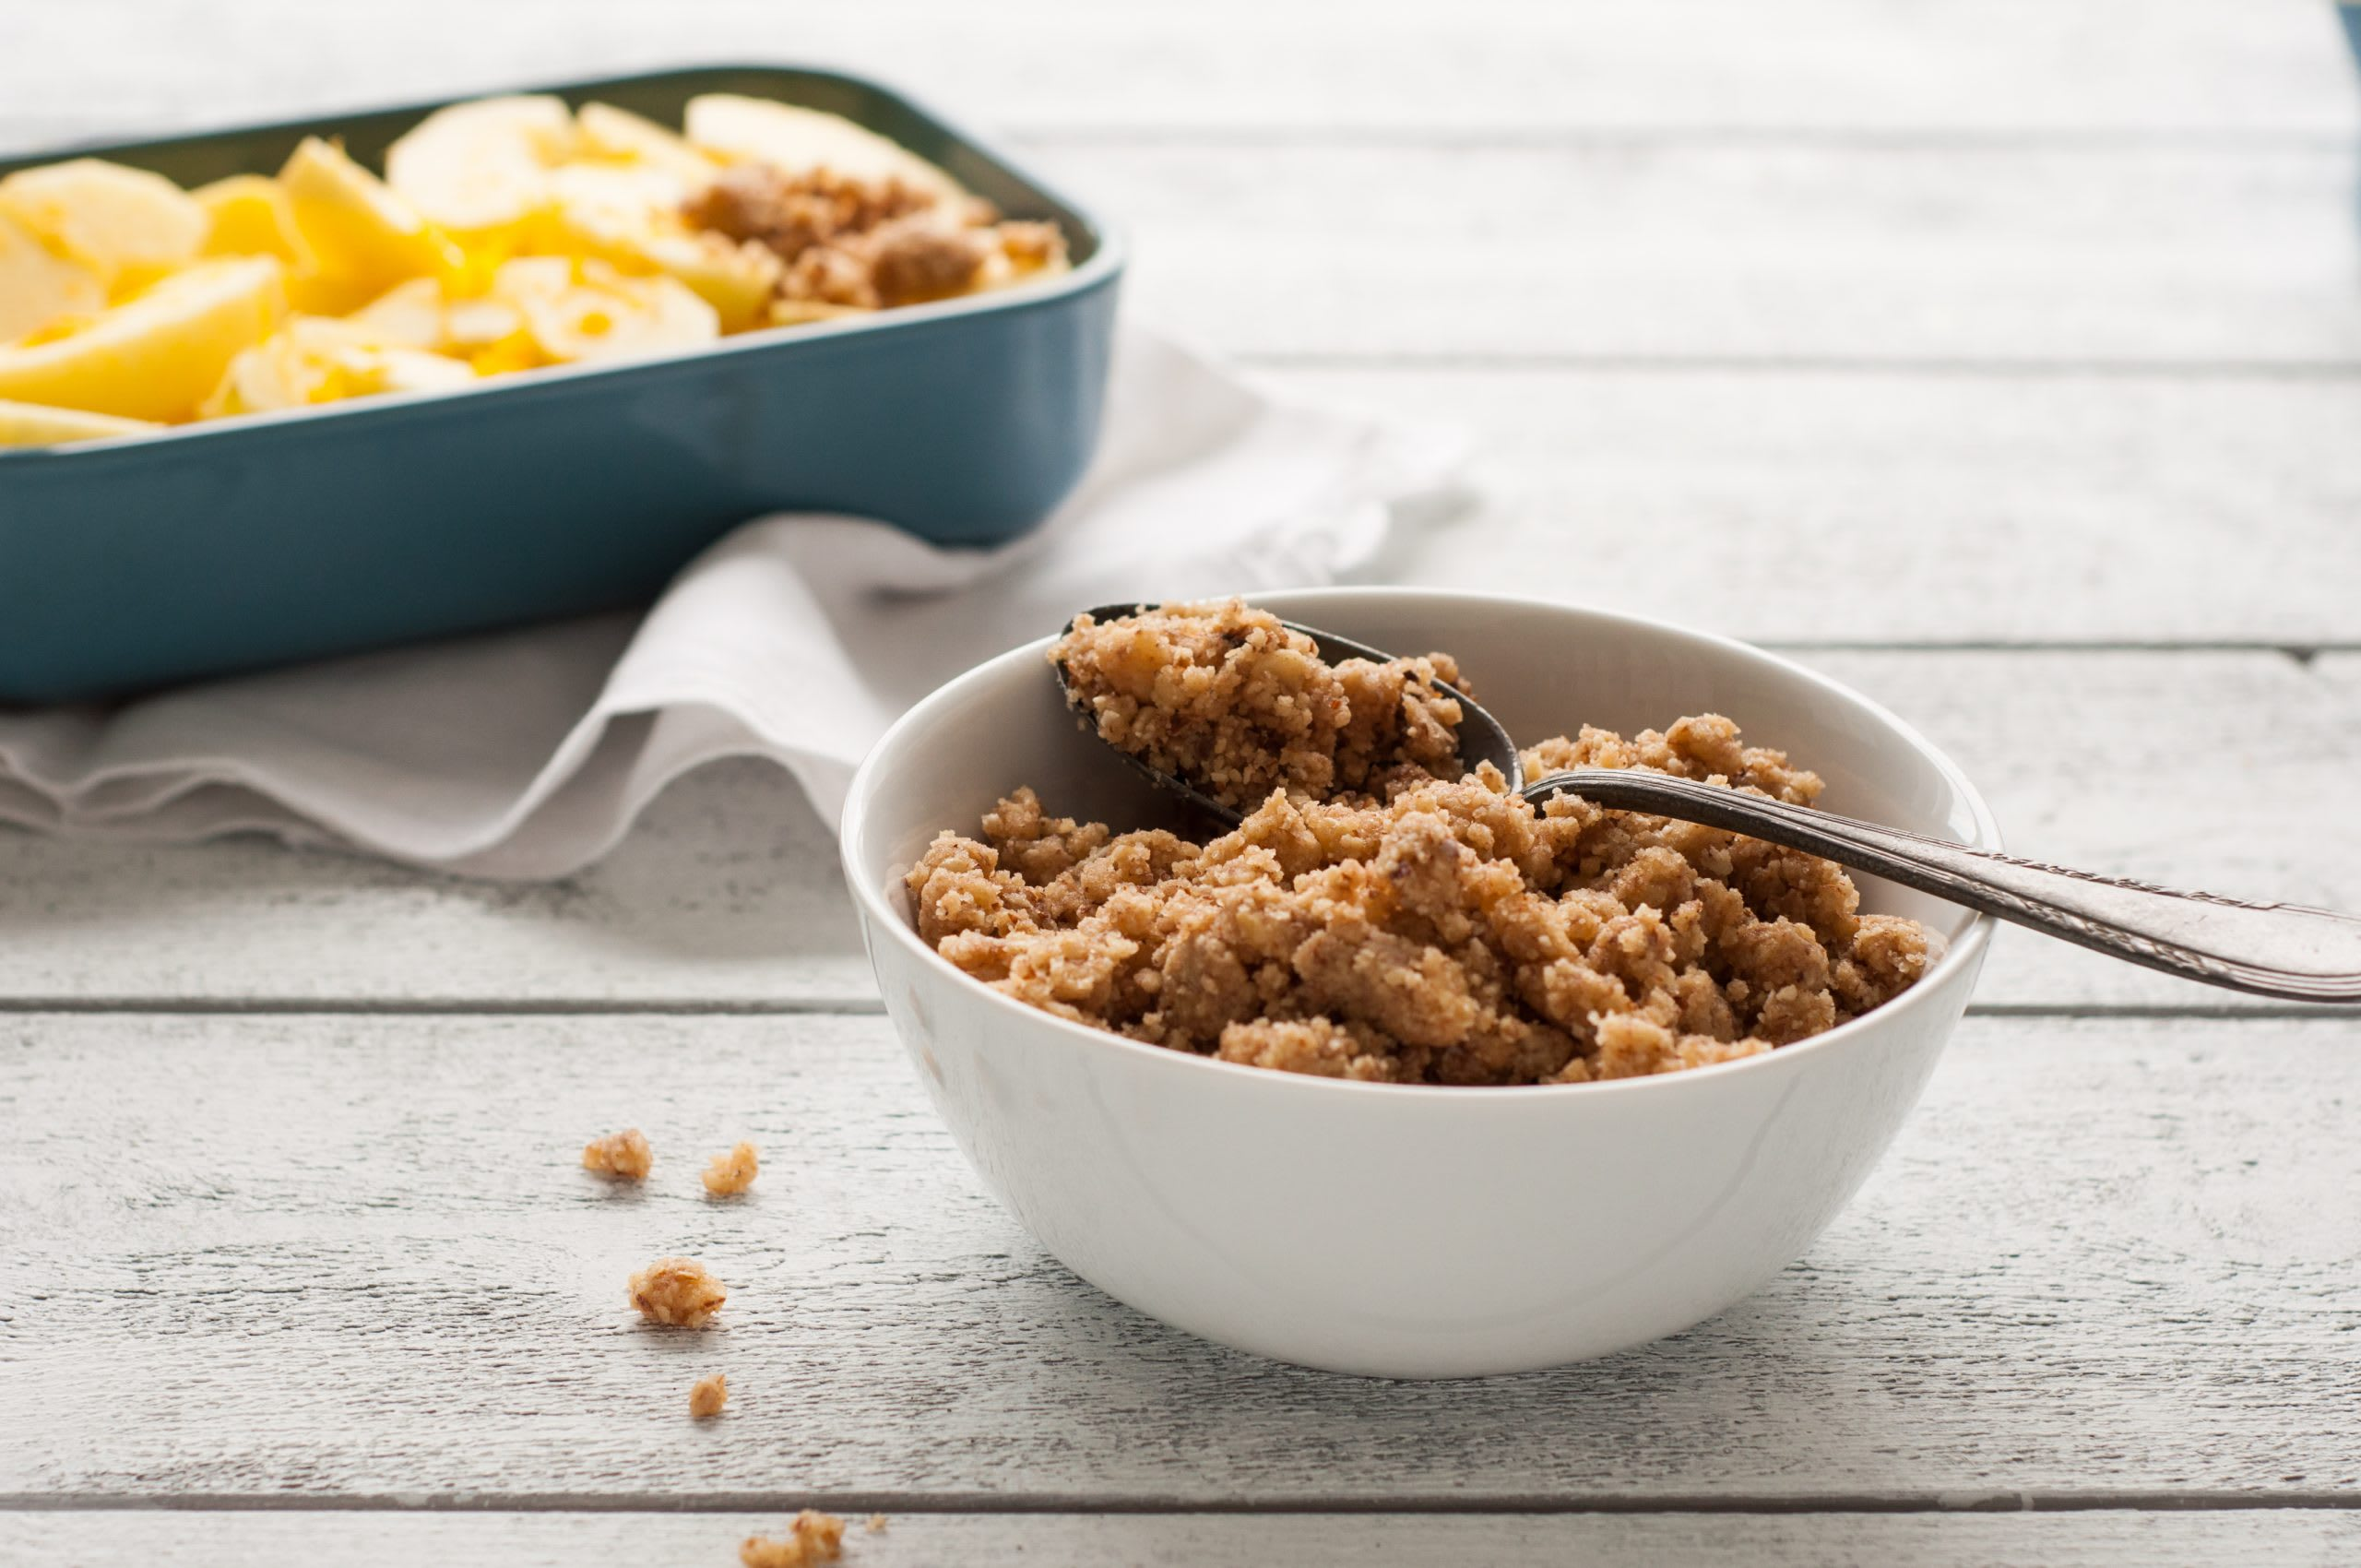 Streusel (Crumble)